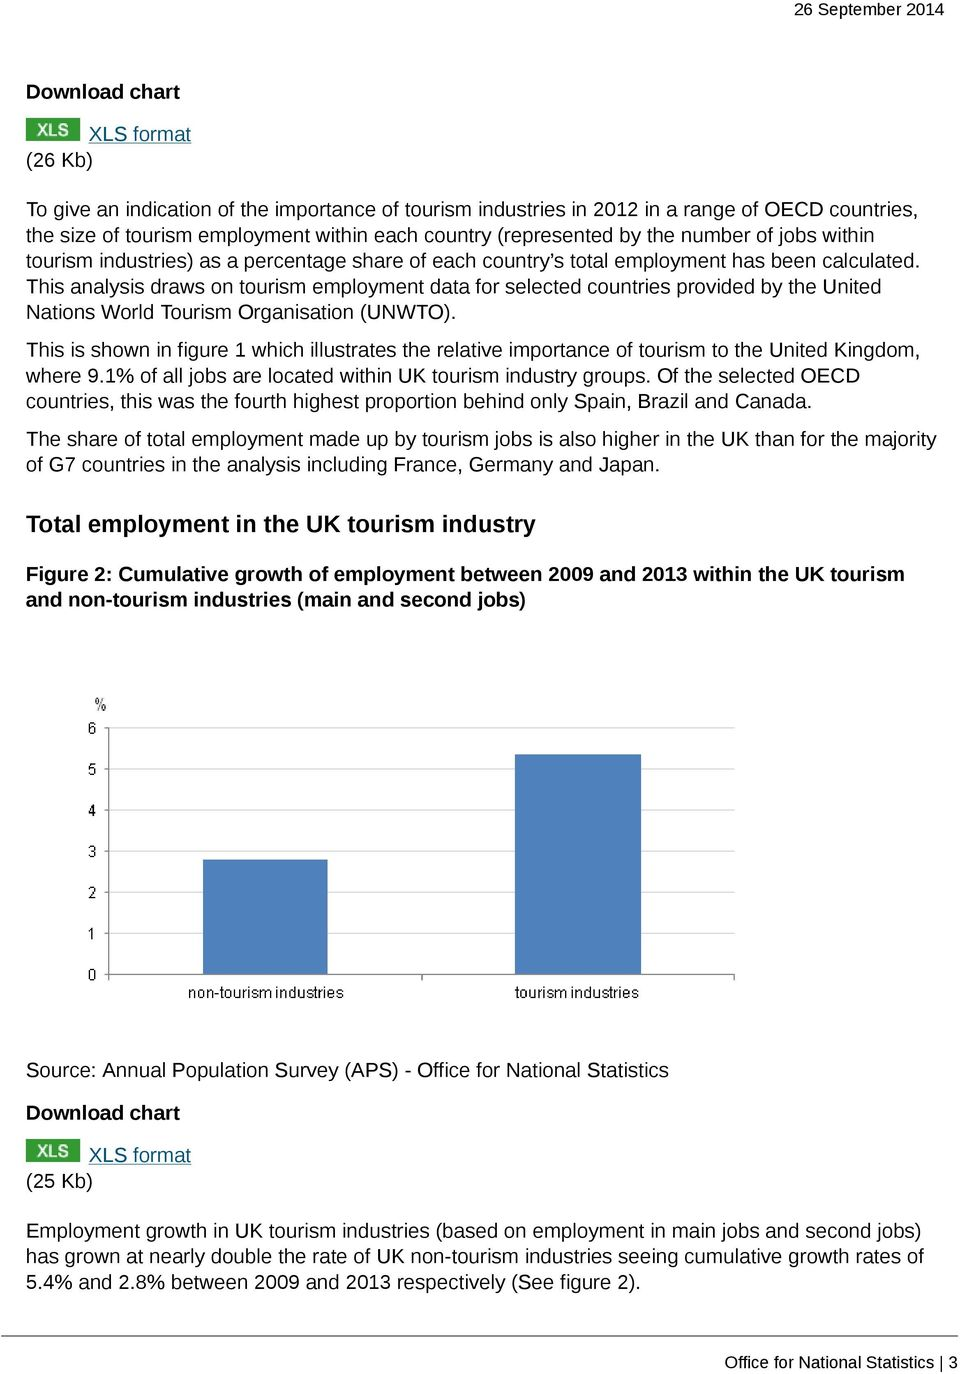 This analysis draws on tourism employment data for selected countries provided by the United Nations World Tourism Organisation (UNWTO).